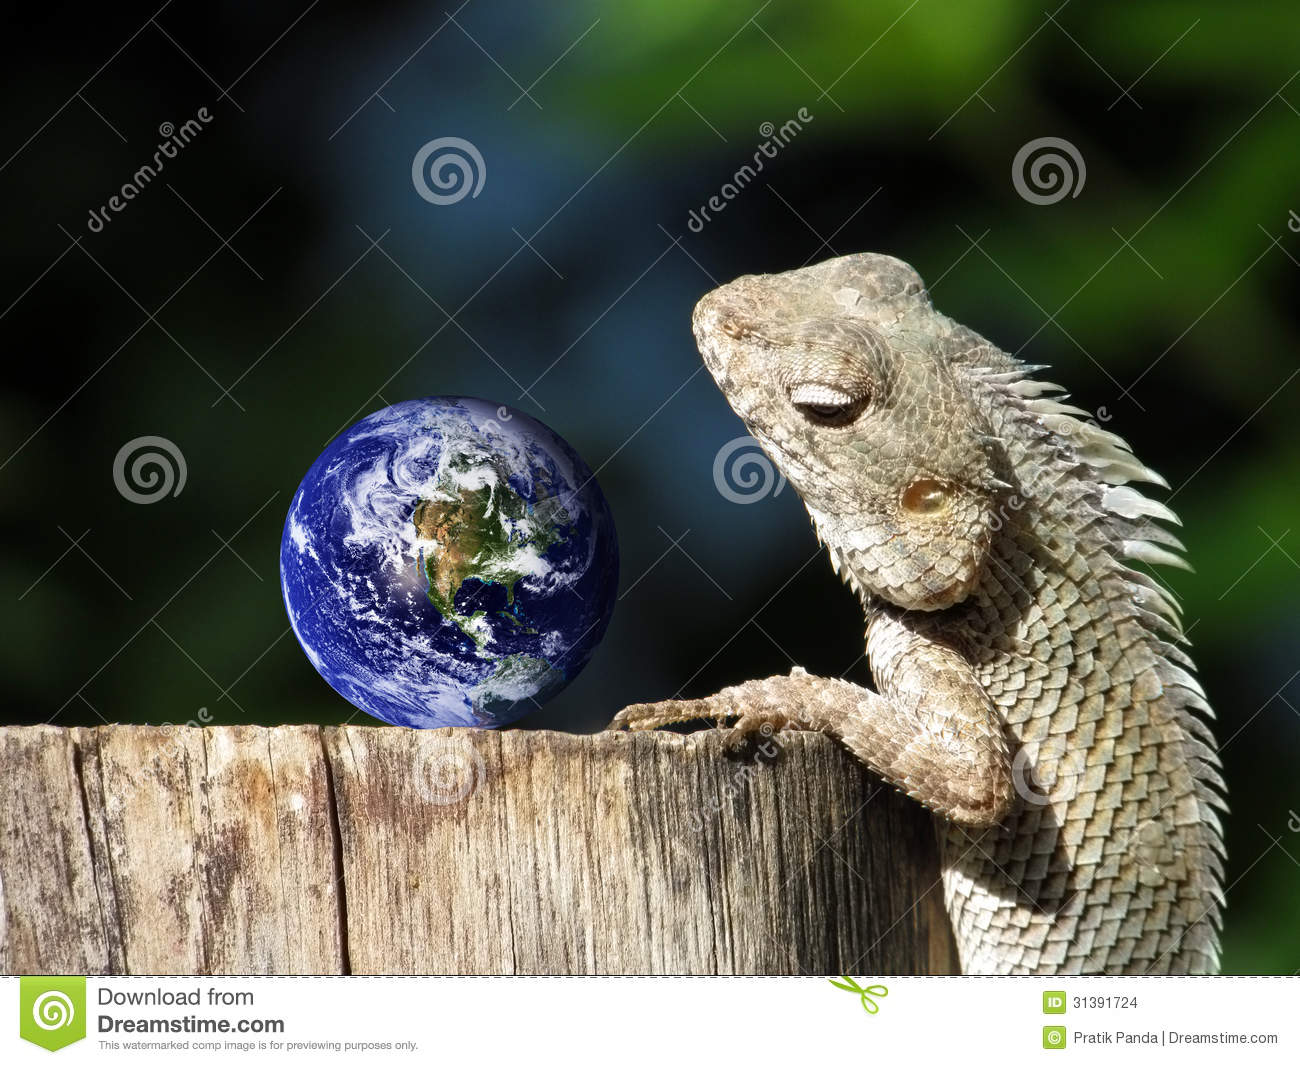 Travel tourism concept the chameleon represents a person staring at